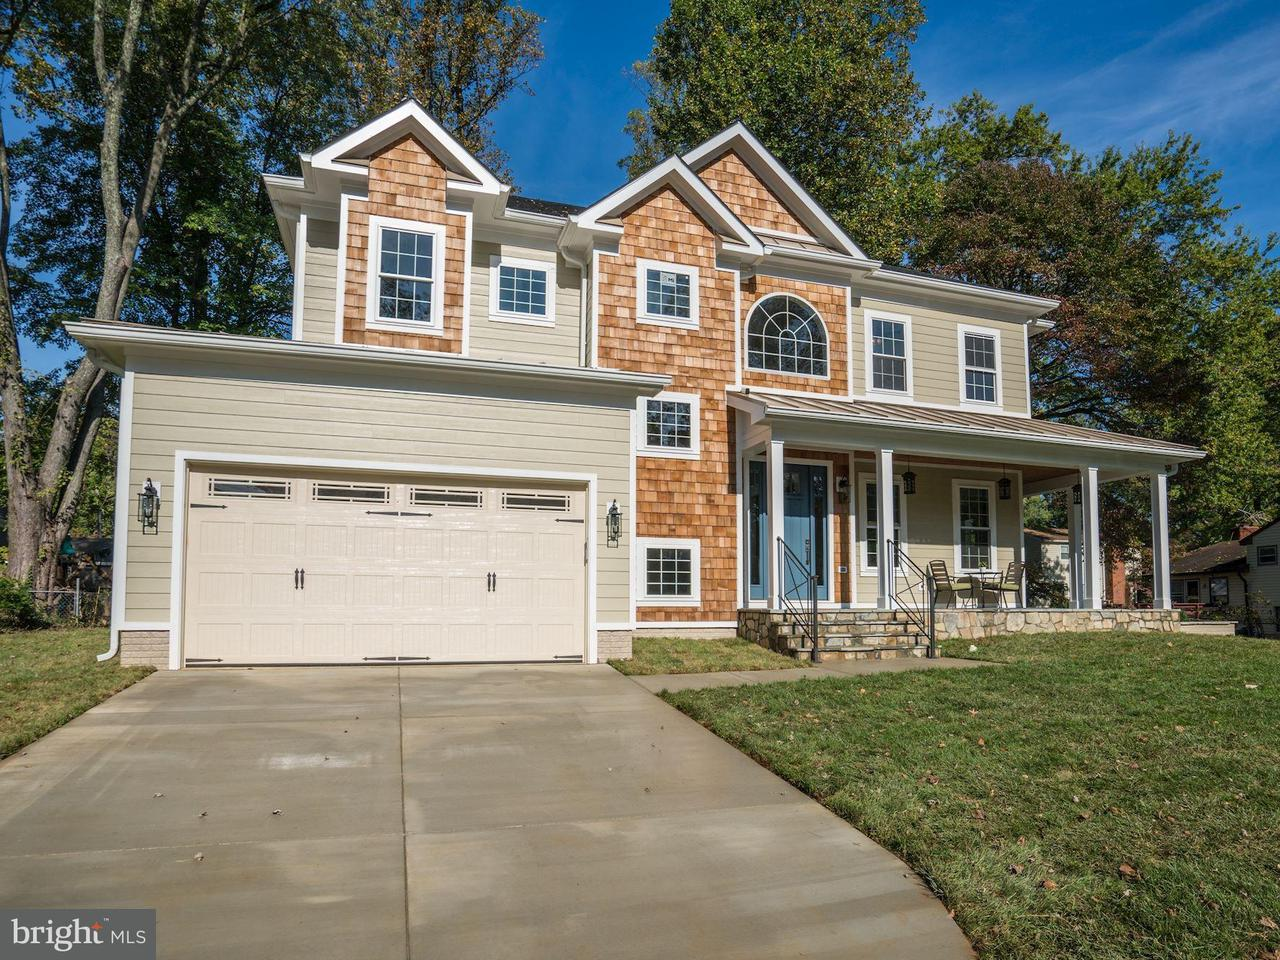 Single Family Home for Sale at 203 TAPAWINGO RD SW 203 TAPAWINGO RD SW Vienna, Virginia 22180 United States